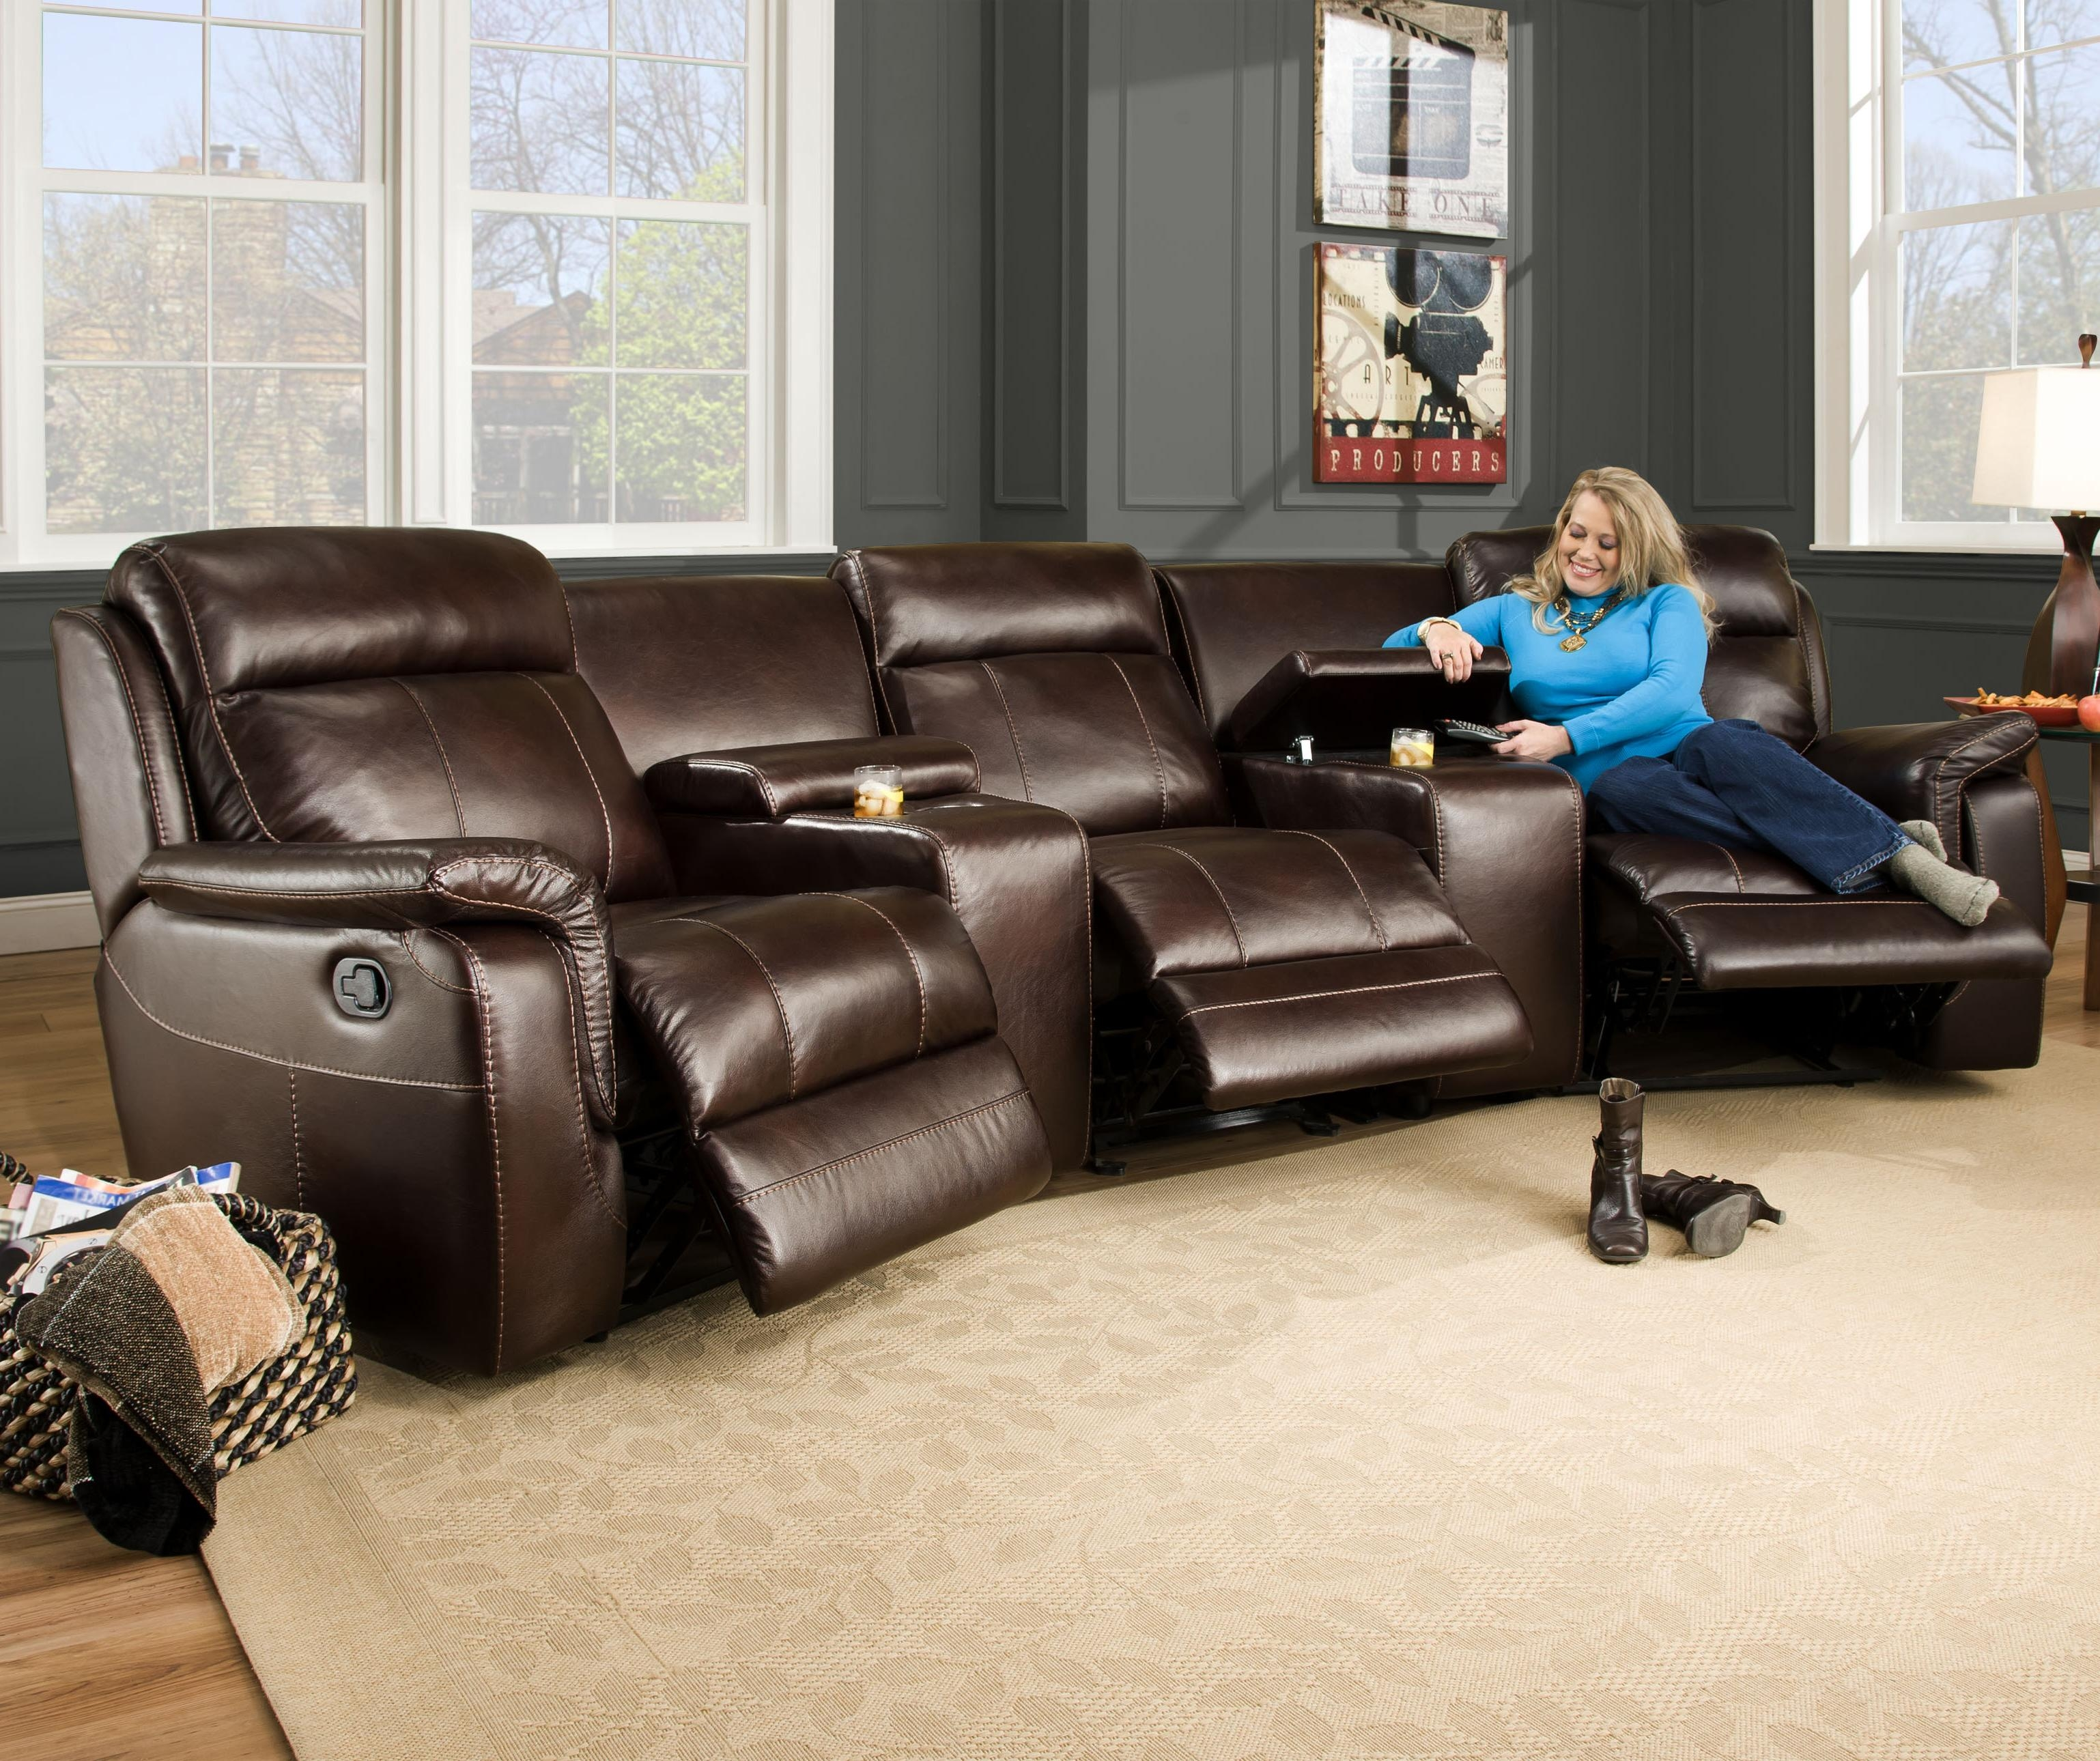 Corinthian 862 Sectional Sofa With 5 Seats 2 Are Wall Away Regarding Corinthian Sectional Sofas (Image 4 of 15)